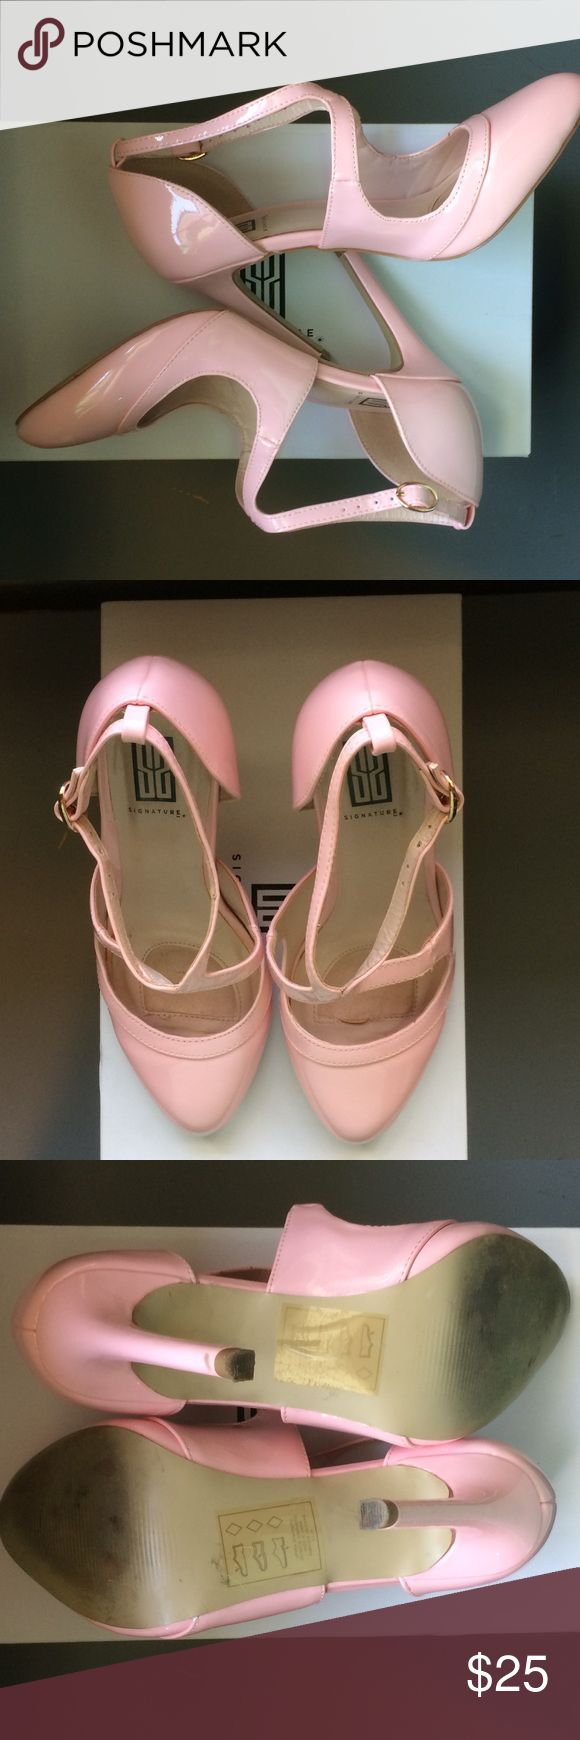 "🌸HOST PICK🌸 Shoe Dazzle - Light pink heels 🌸HOST PICK - Best In Shoes Party 7/26/17🌸                    Shoe Dazzle - Beautiful light pink heels with unique straps. Heel height 4 1/2"". Will accept reasonable offers. Shoe Dazzle Shoes Heels"